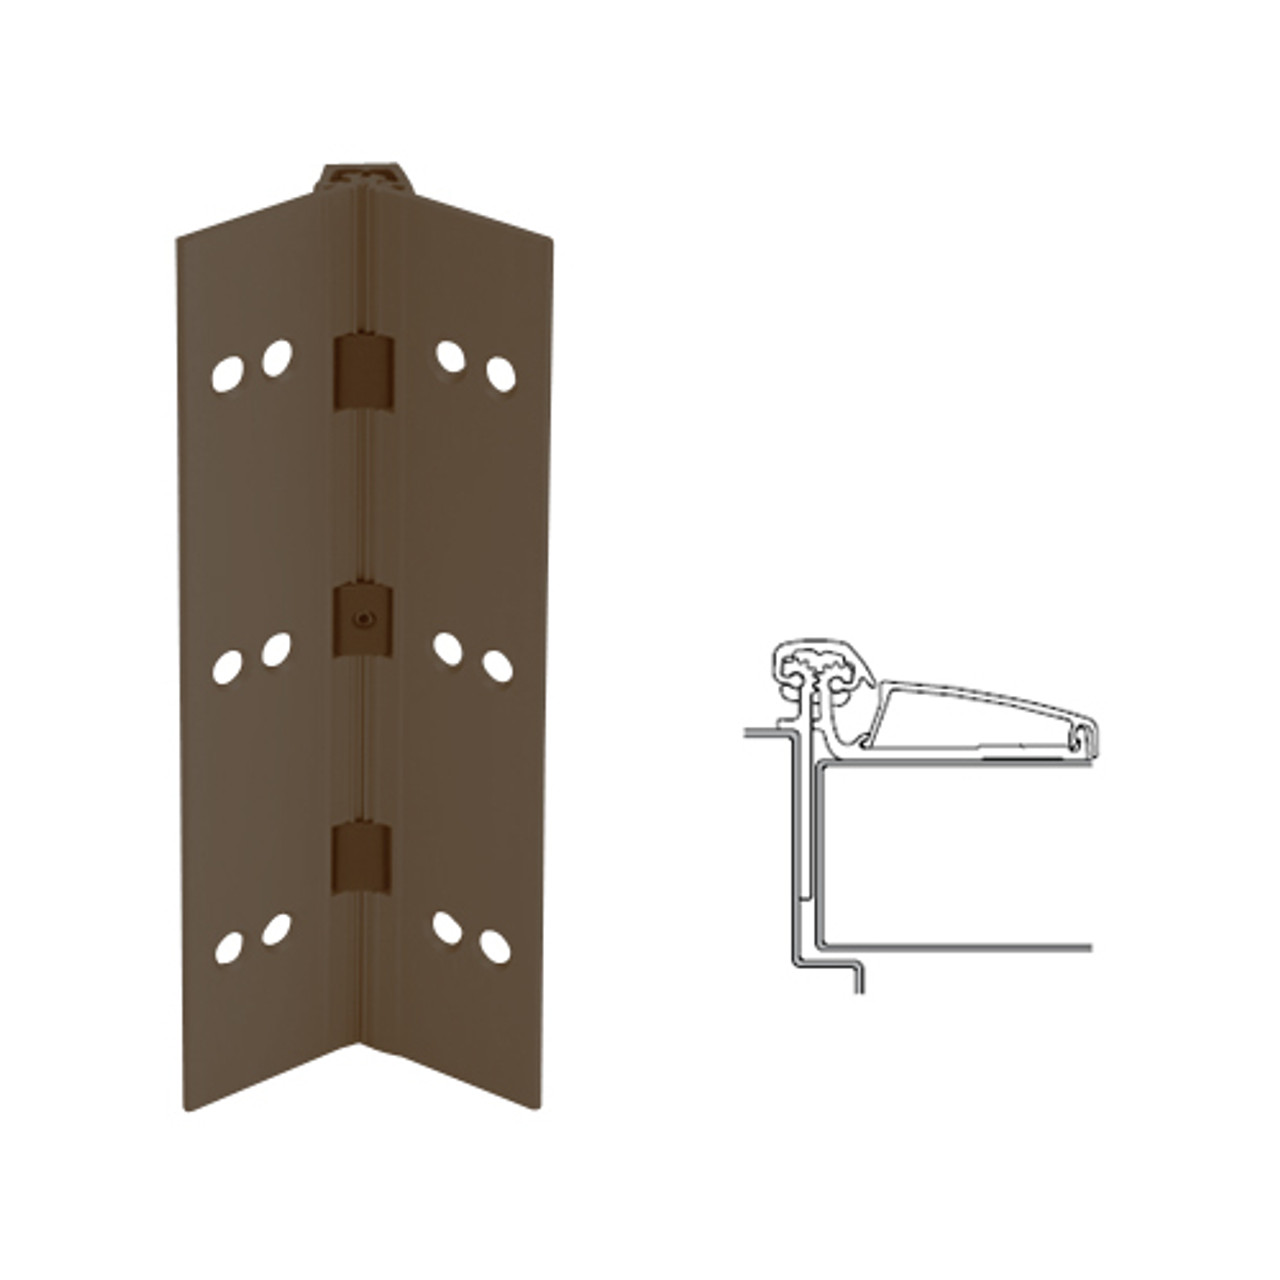 045XY-313AN-120-SECWDWD IVES Adjustable Half Surface Continuous Geared Hinges with Security Screws - Hex Pin Drive in Dark Bronze Anodized